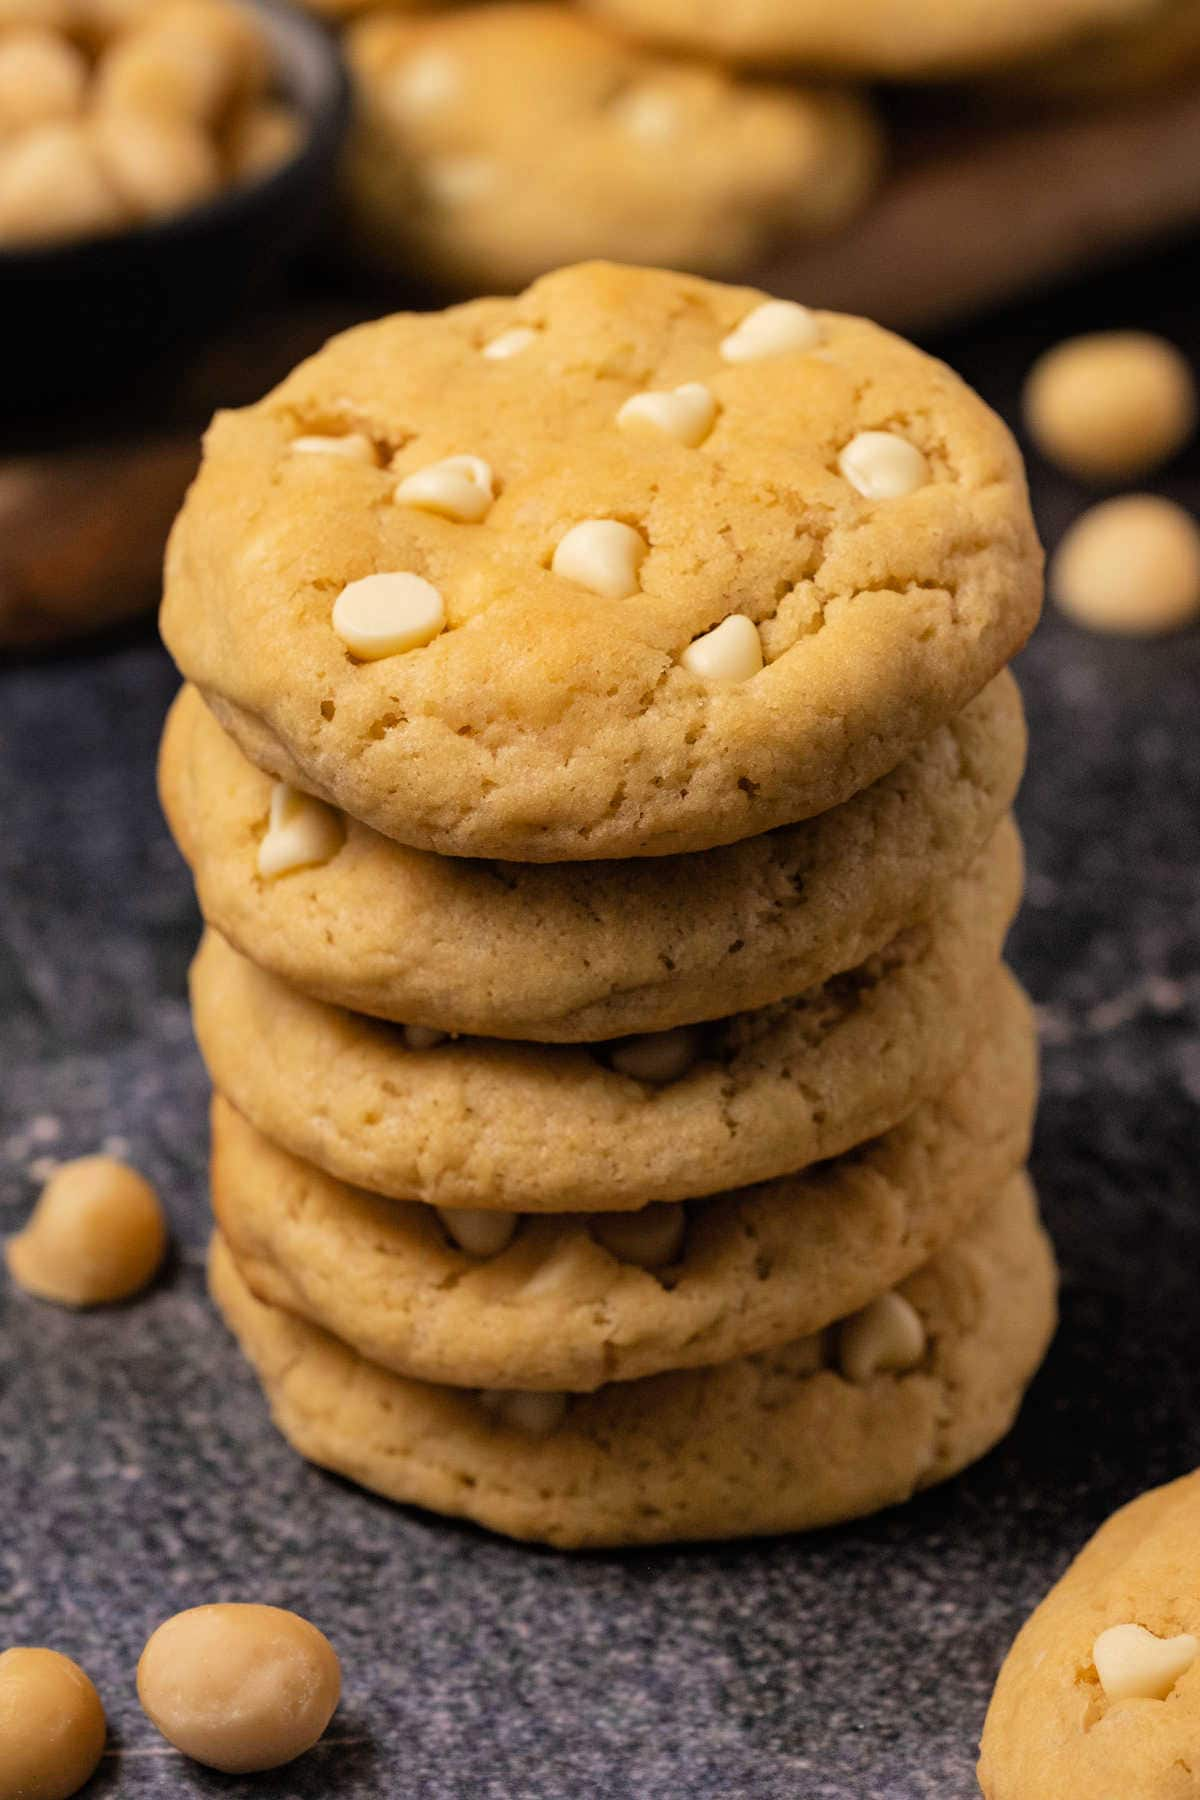 White chocolate macadamia nut cookies in a stack.